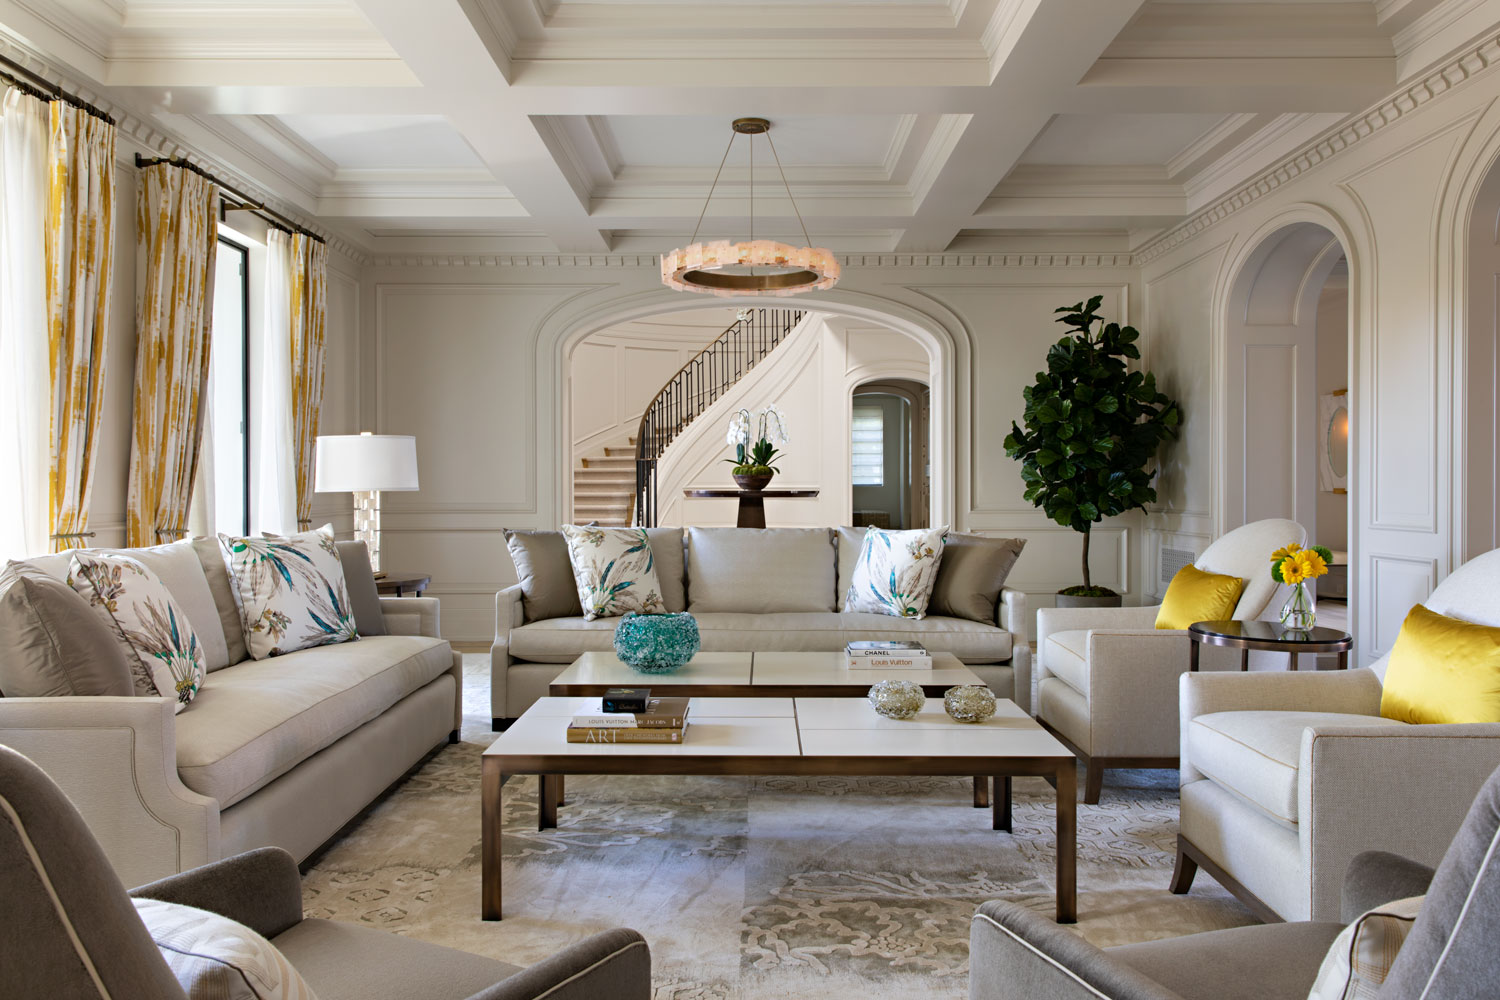 04-transitional-living-room-coffered-ceiling-arched-doorway-gary-drake-general-contractor.jpg